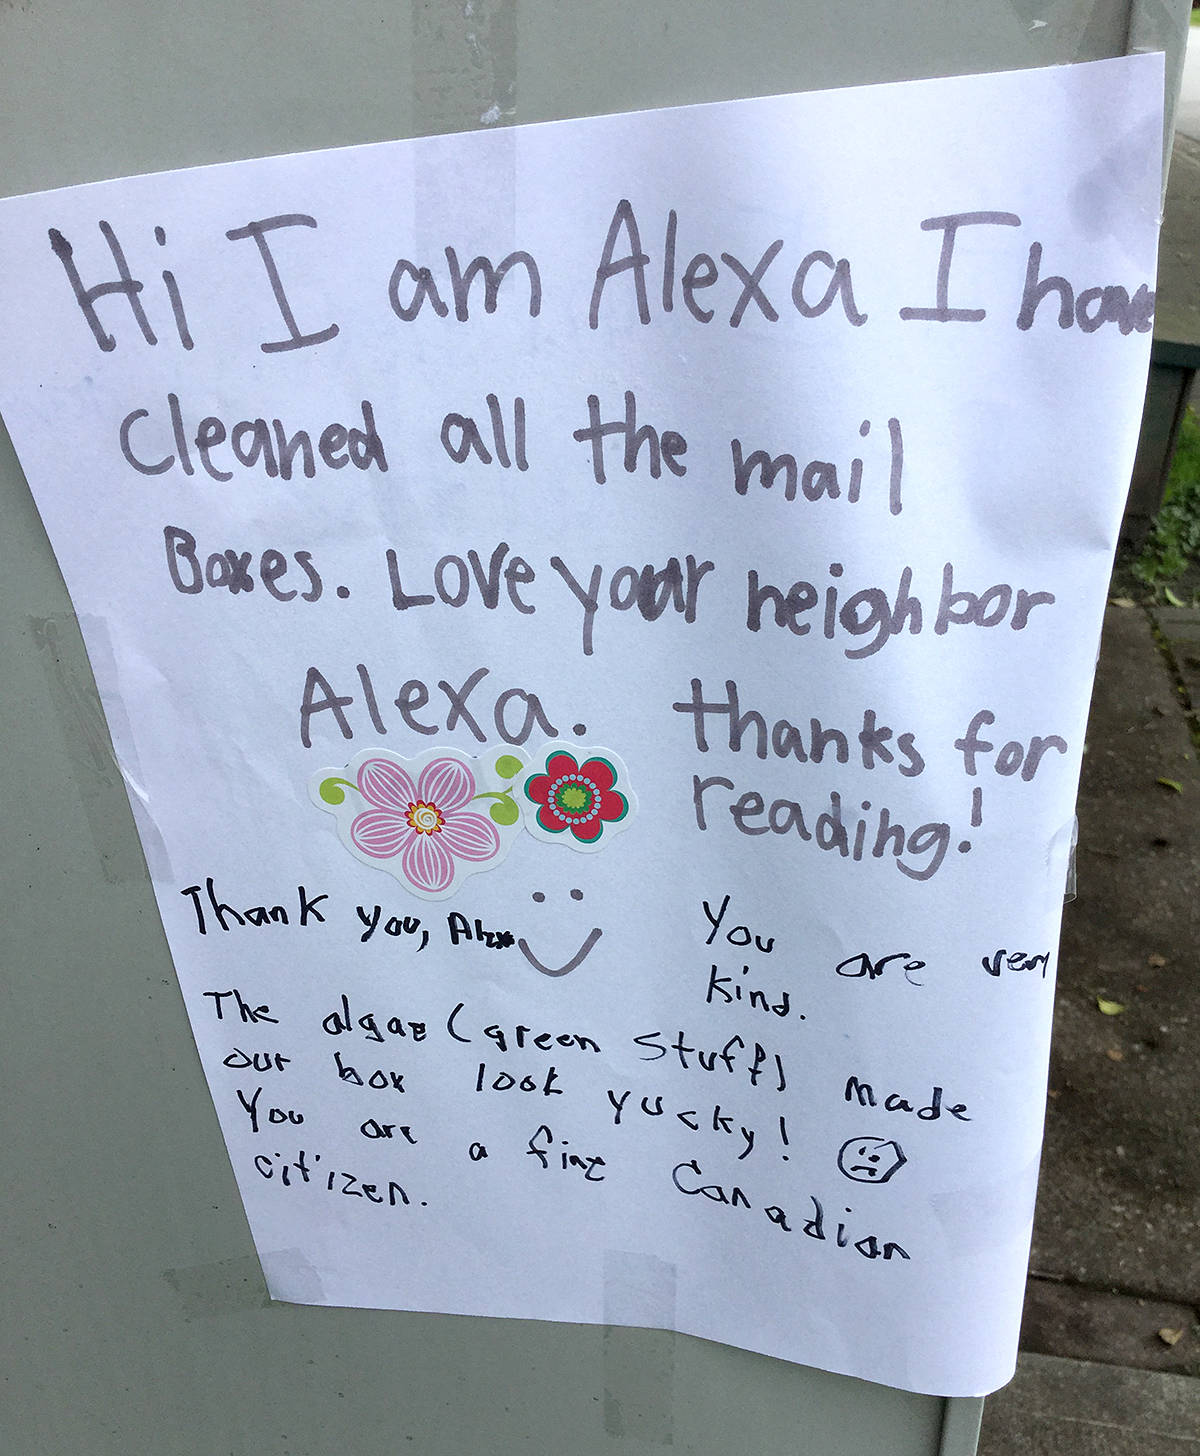 Alexa, assumed to be a nearby resident, took time to clean these mailboxes in the Garibaldi neighbourhood of Maple Ridge. She left a note on the side of the boxes, then another person added to the note, expressing gratitude for her efforts. (Neva Ledlin/Special to The News)